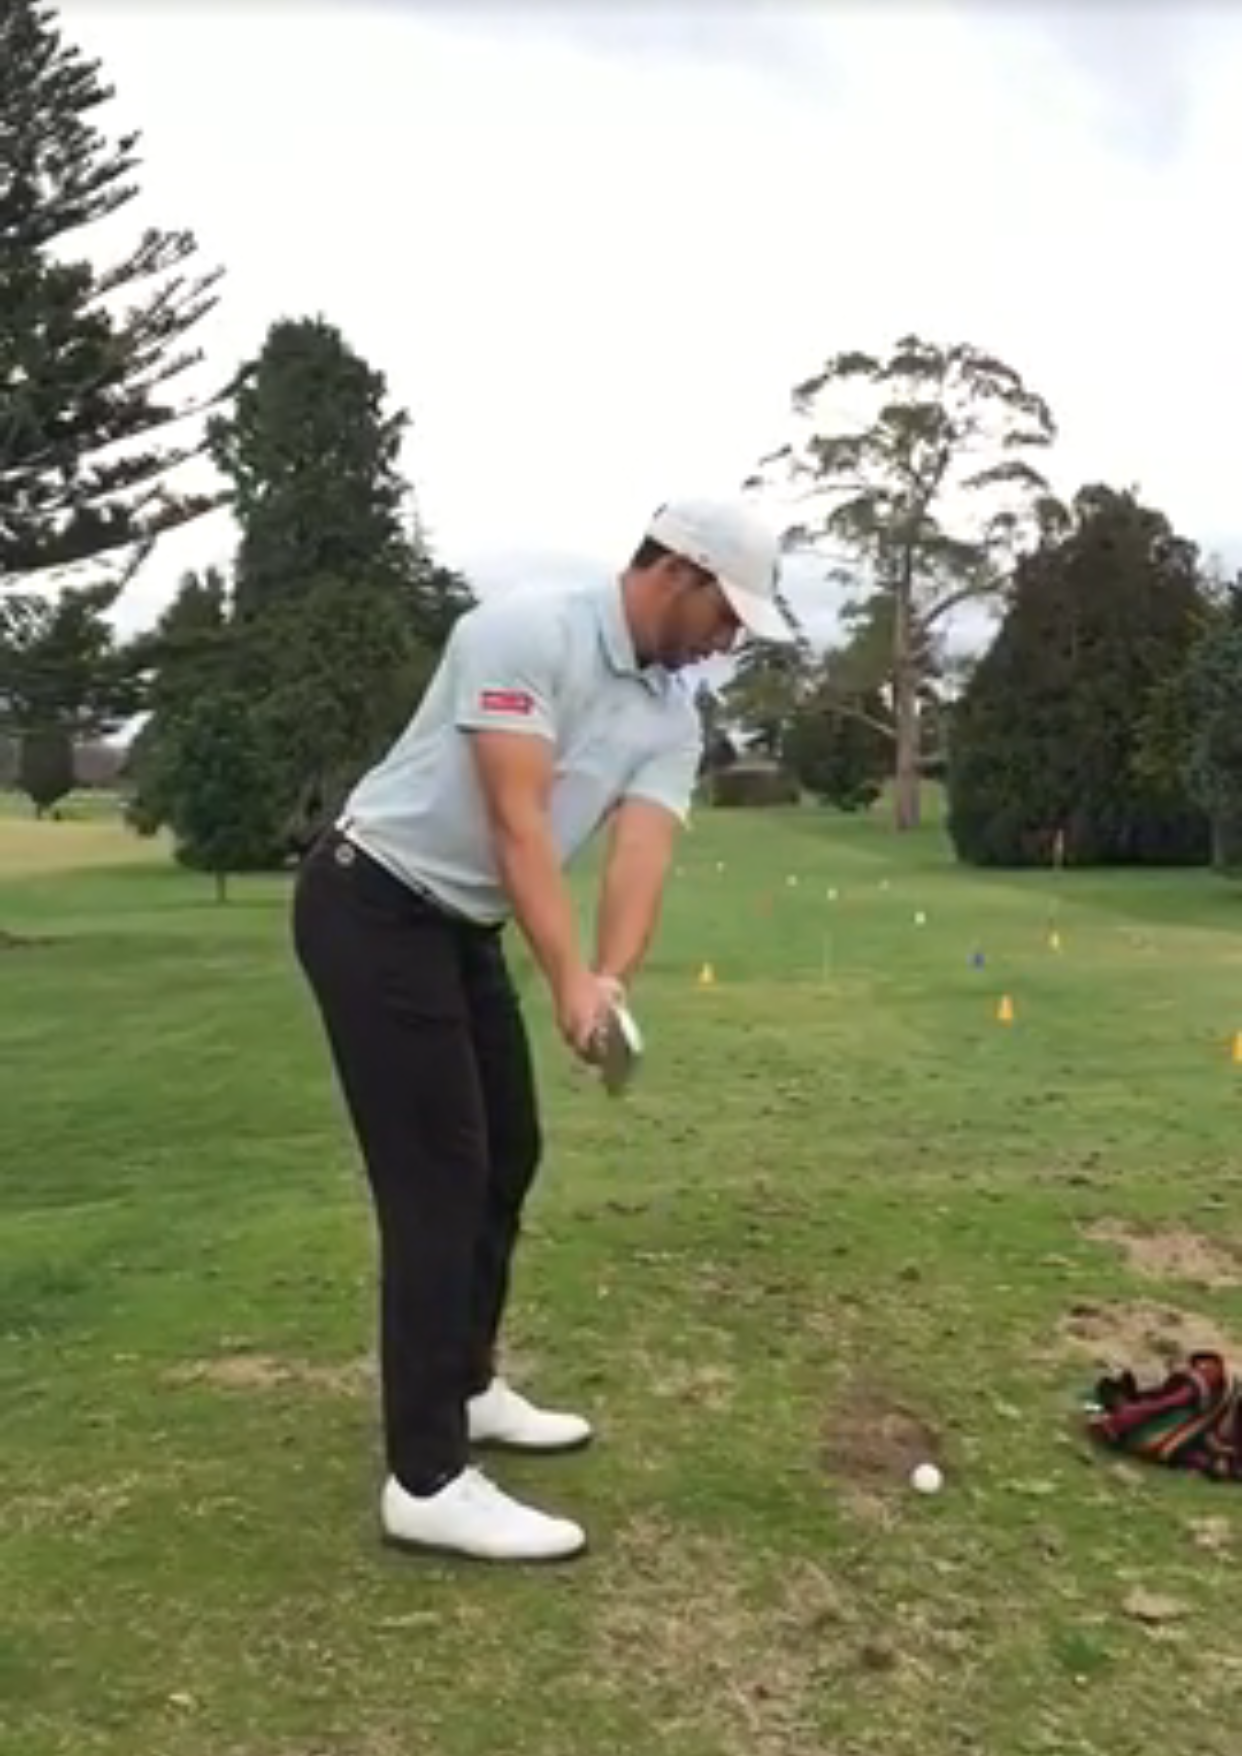 Former NZ Rep and now Tour Professional Luke Toomey is one of the players in the full time program